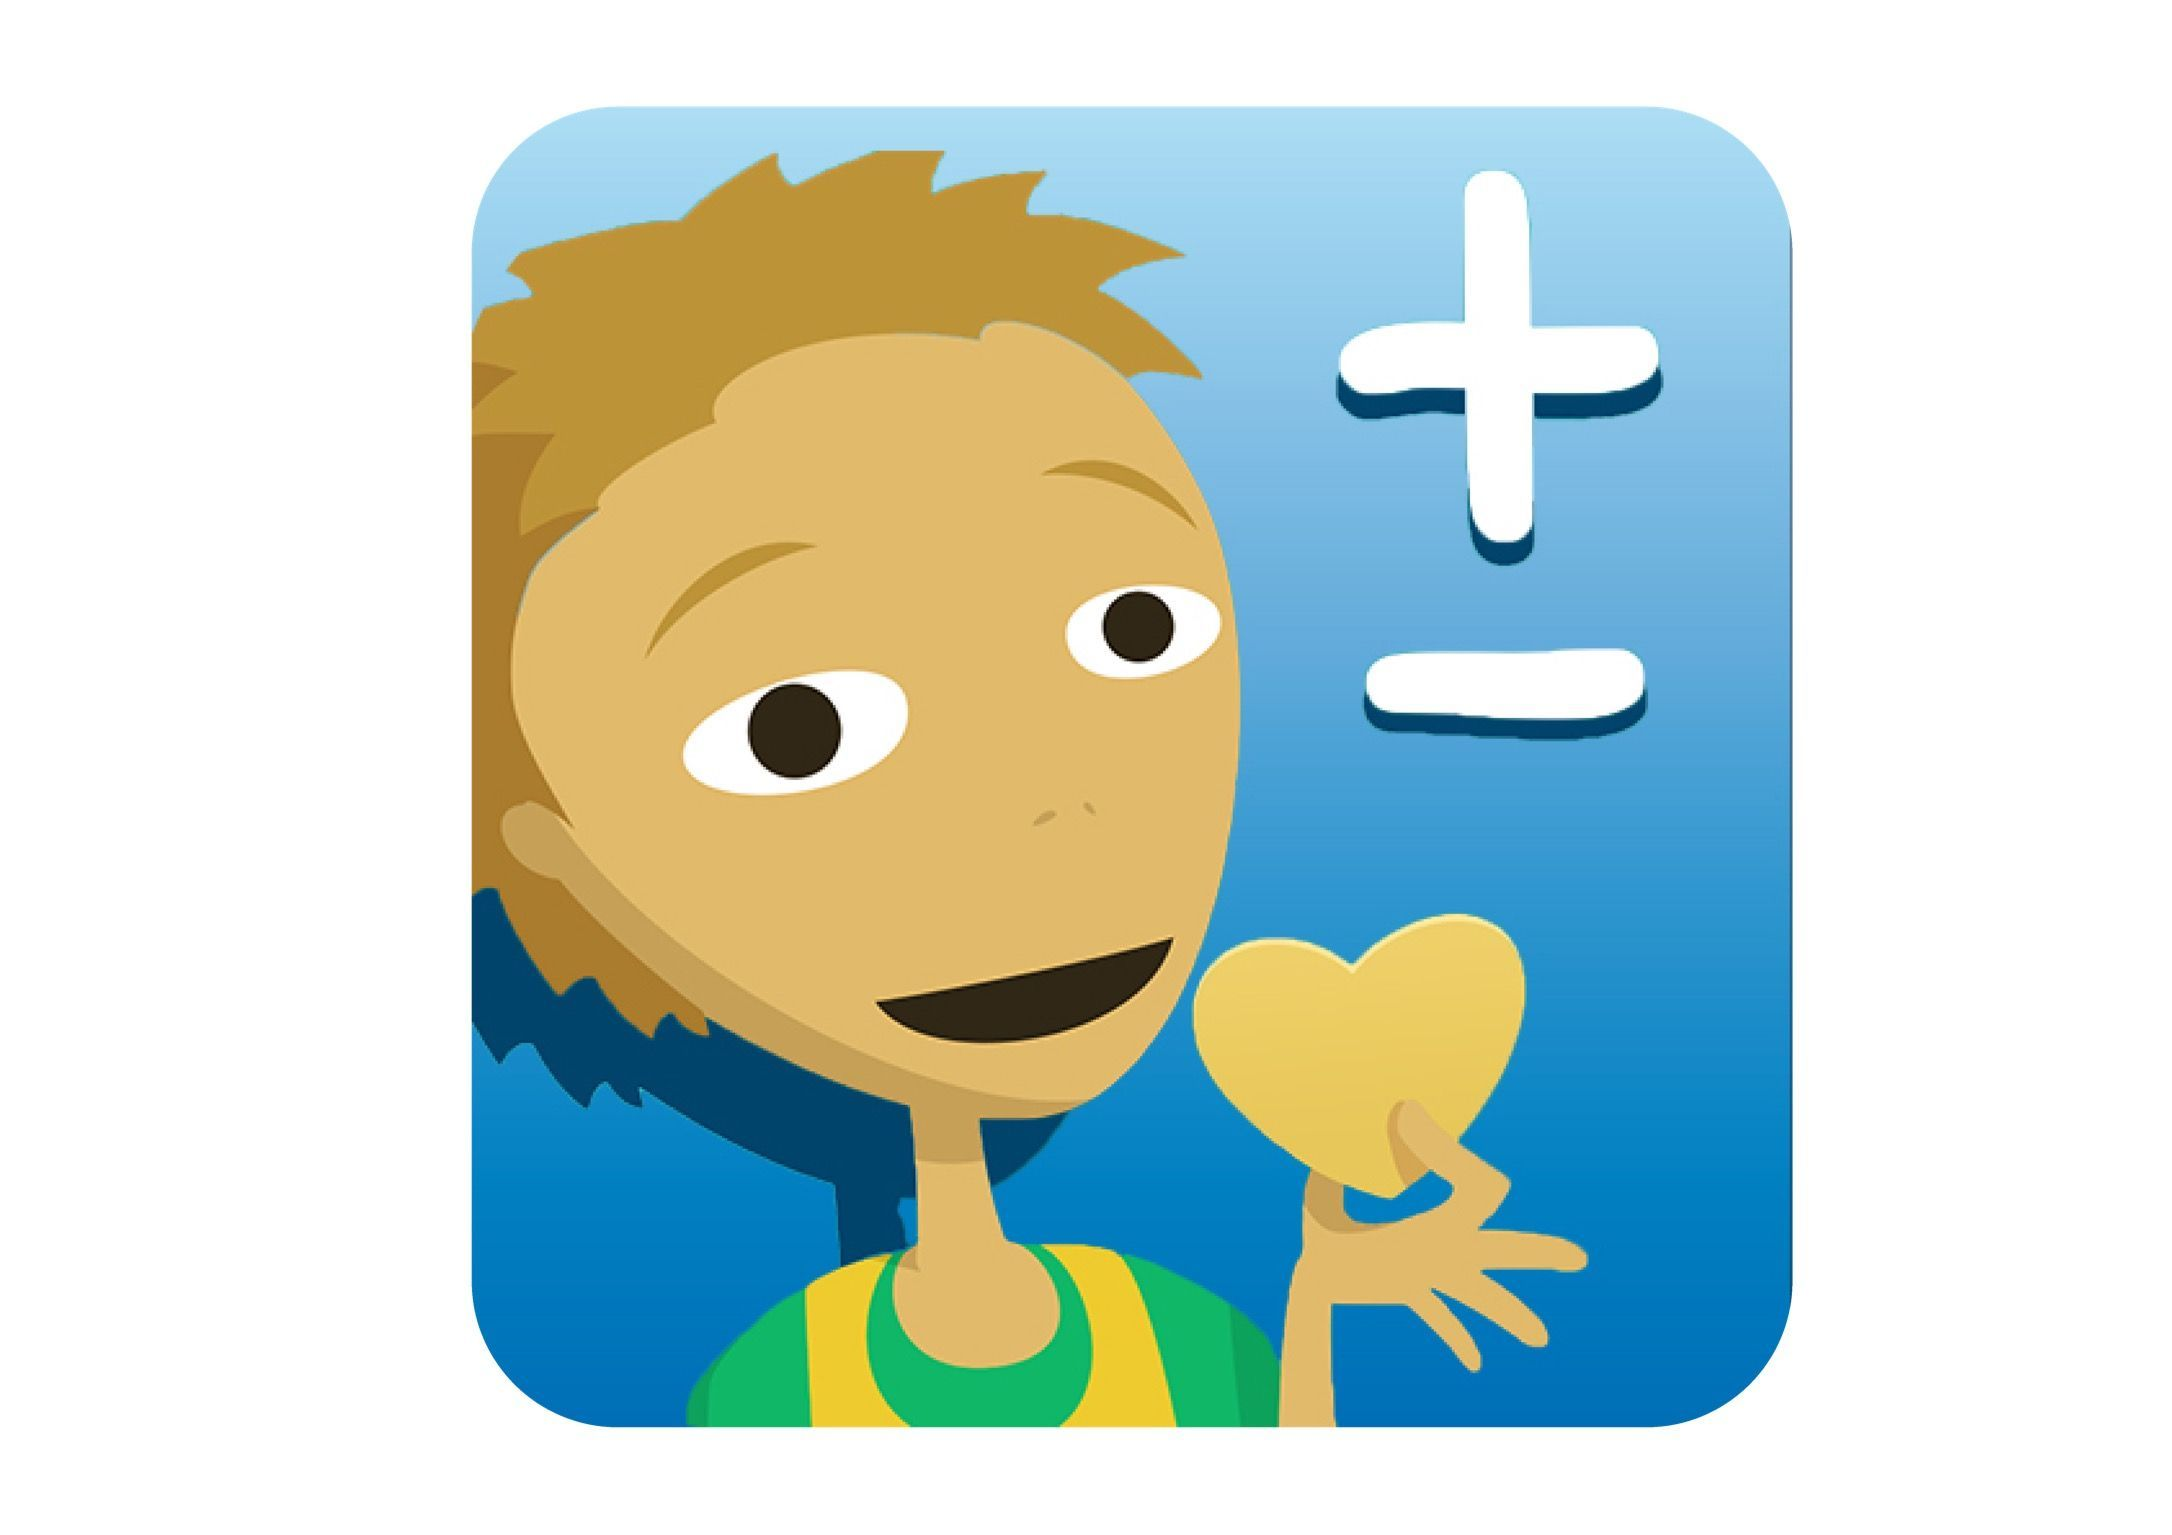 Math bakery first grade android ios bestappsforkids